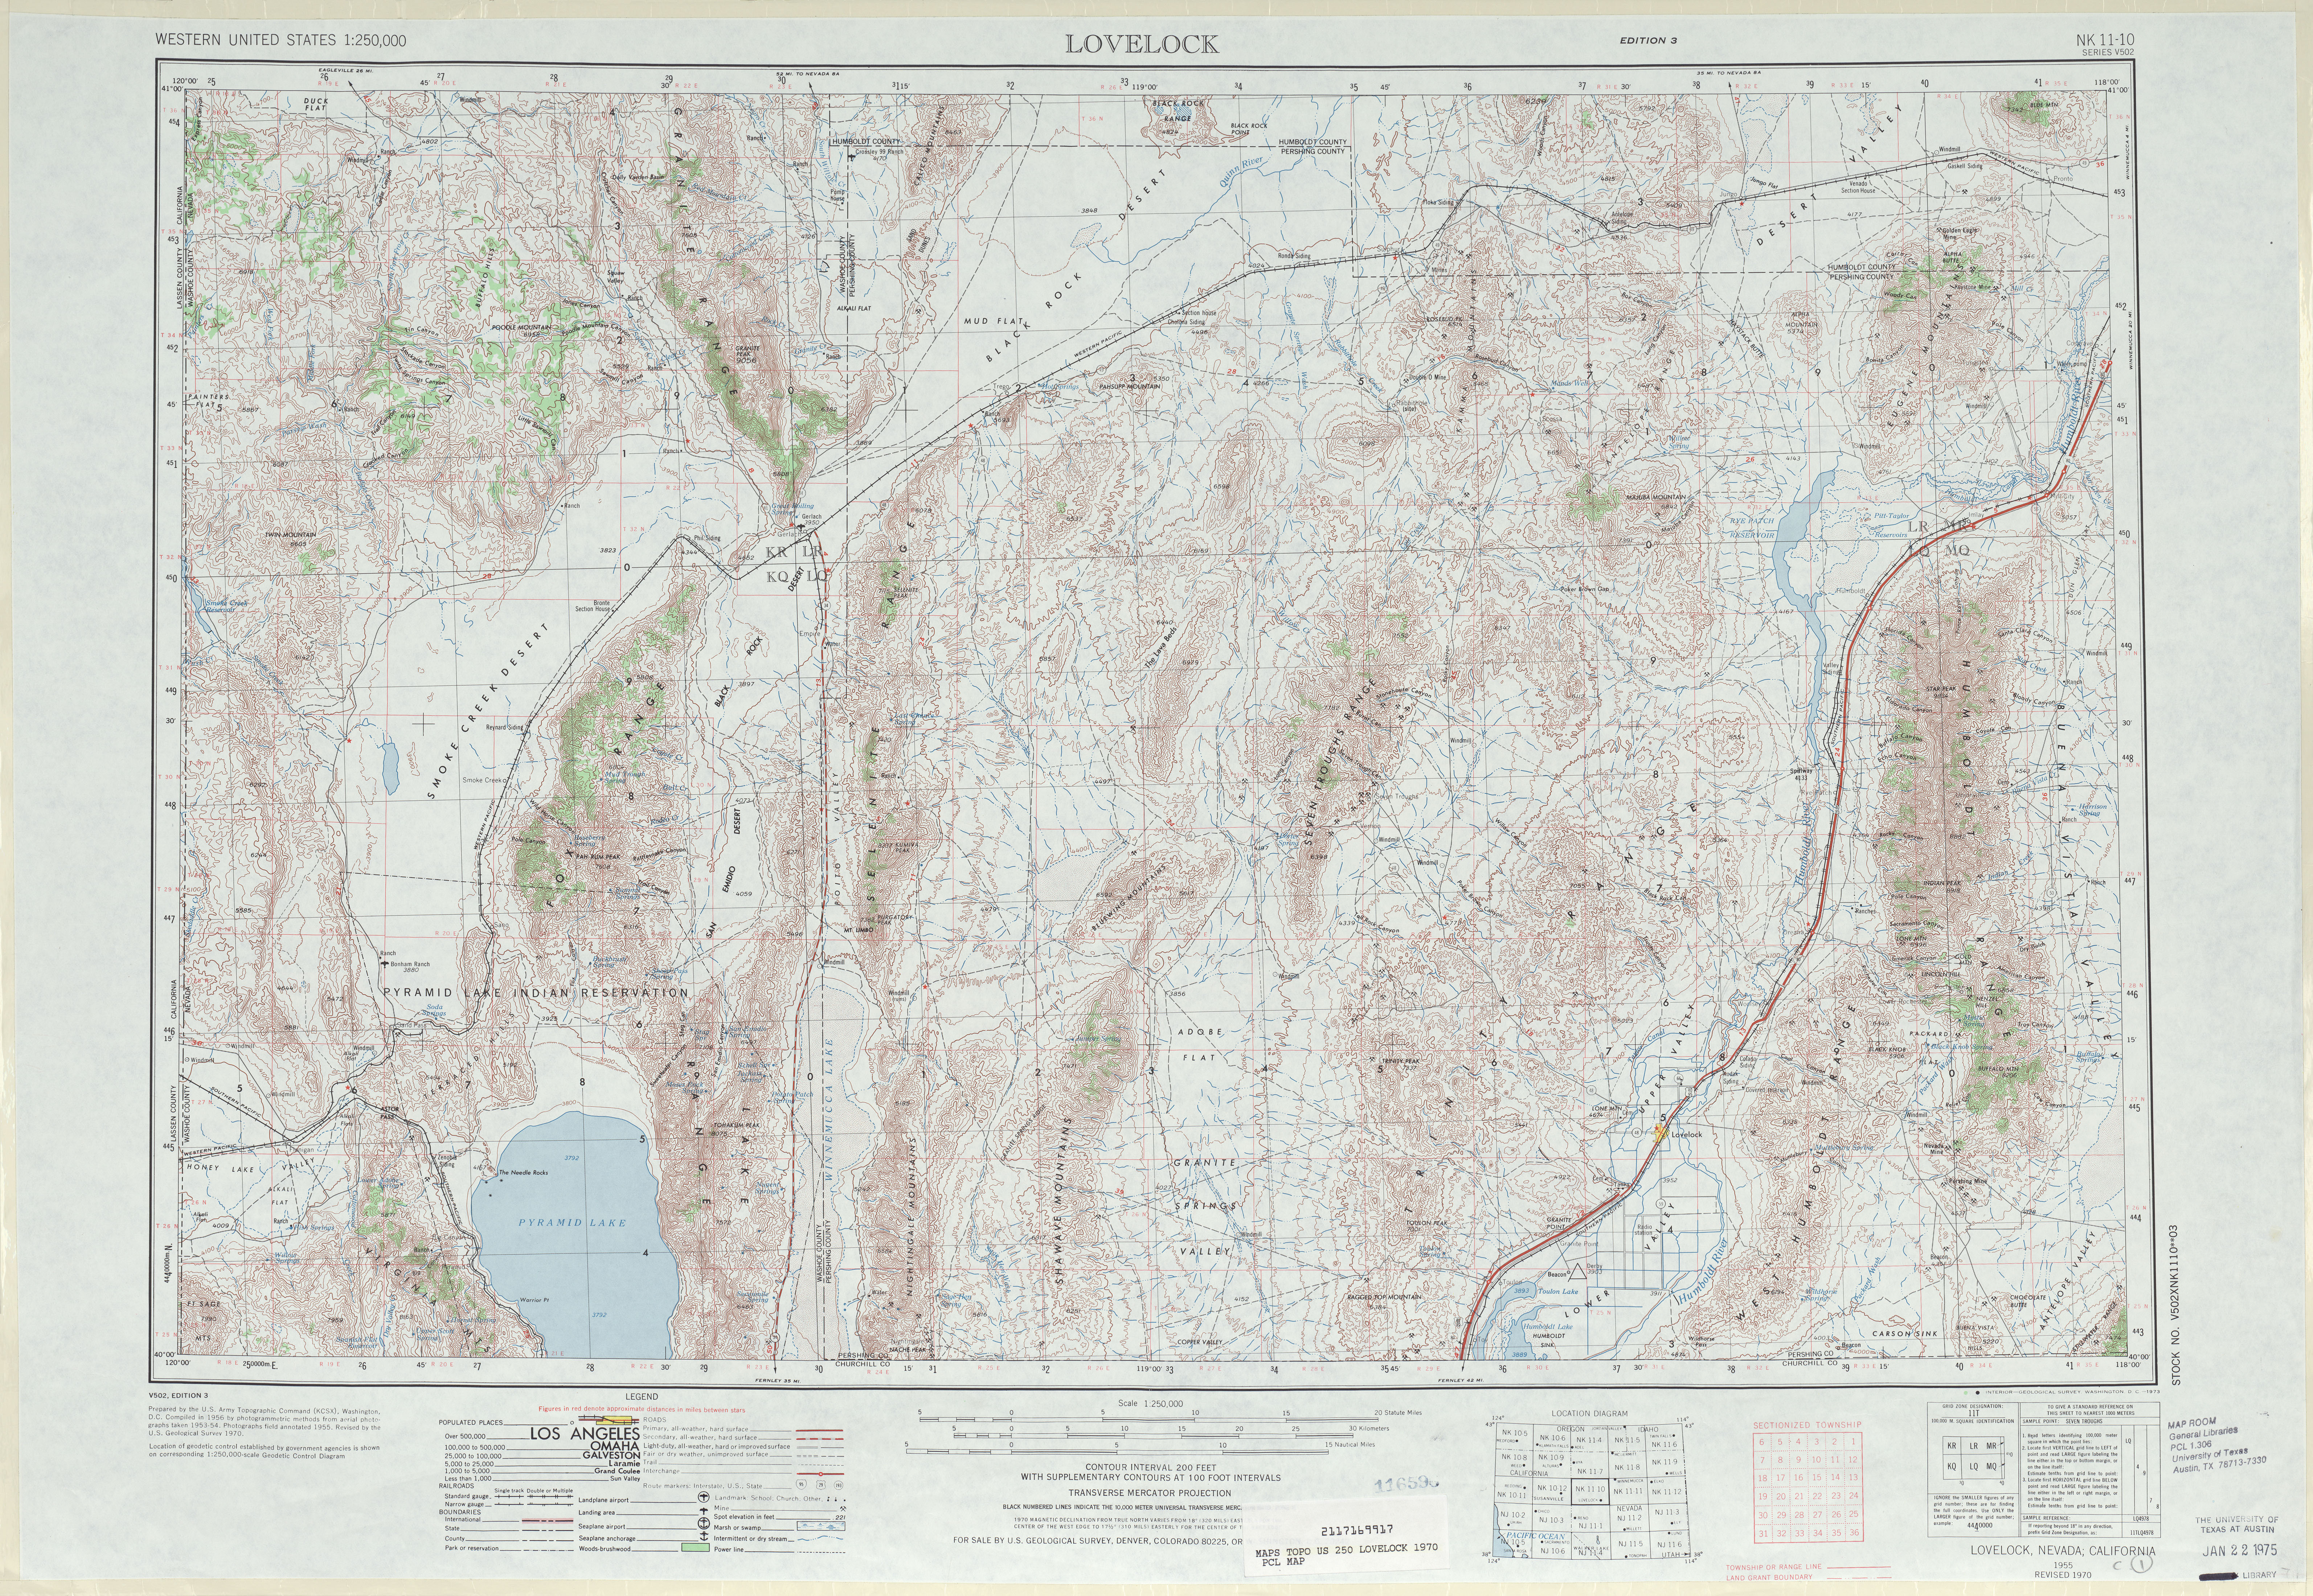 Lovelock Topographic Map Sheet, United States 1970